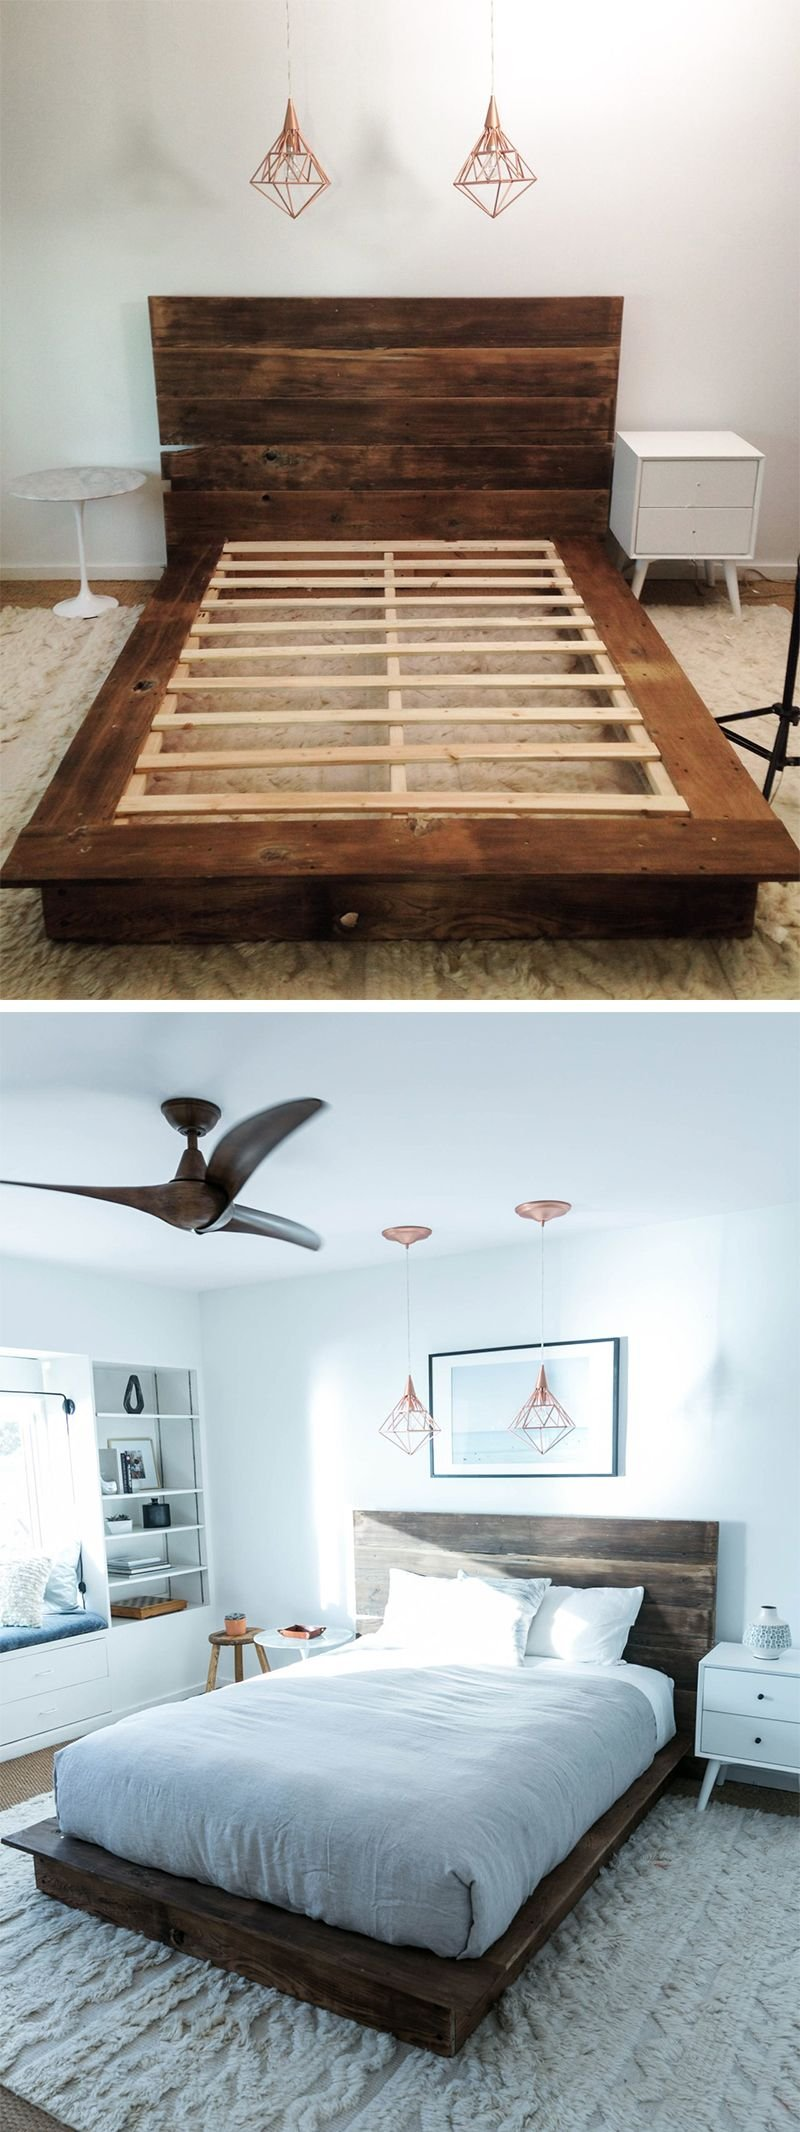 Diy Reclaimed Wood Platform Bed Kate Diy Wood How To Build A Wood Twin Bed Frame